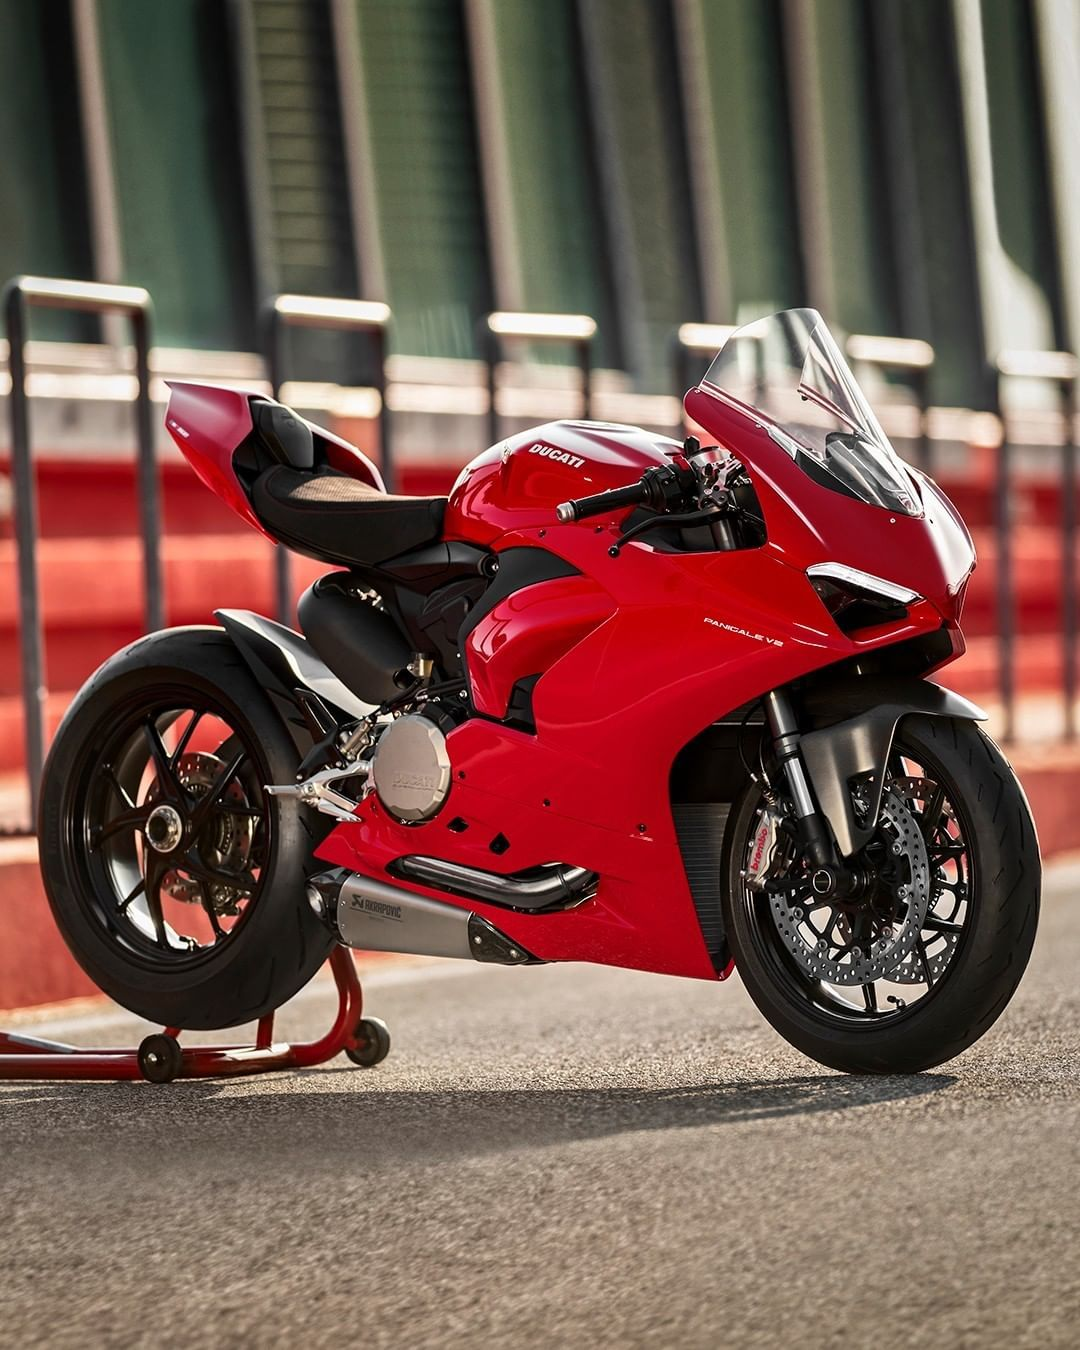 Ducati Motor Holding On Instagram Discover The Range Of Accessories Designed For The New Panigale V2 The Red Essence Ducati Motor Panigale Ducati Panigale